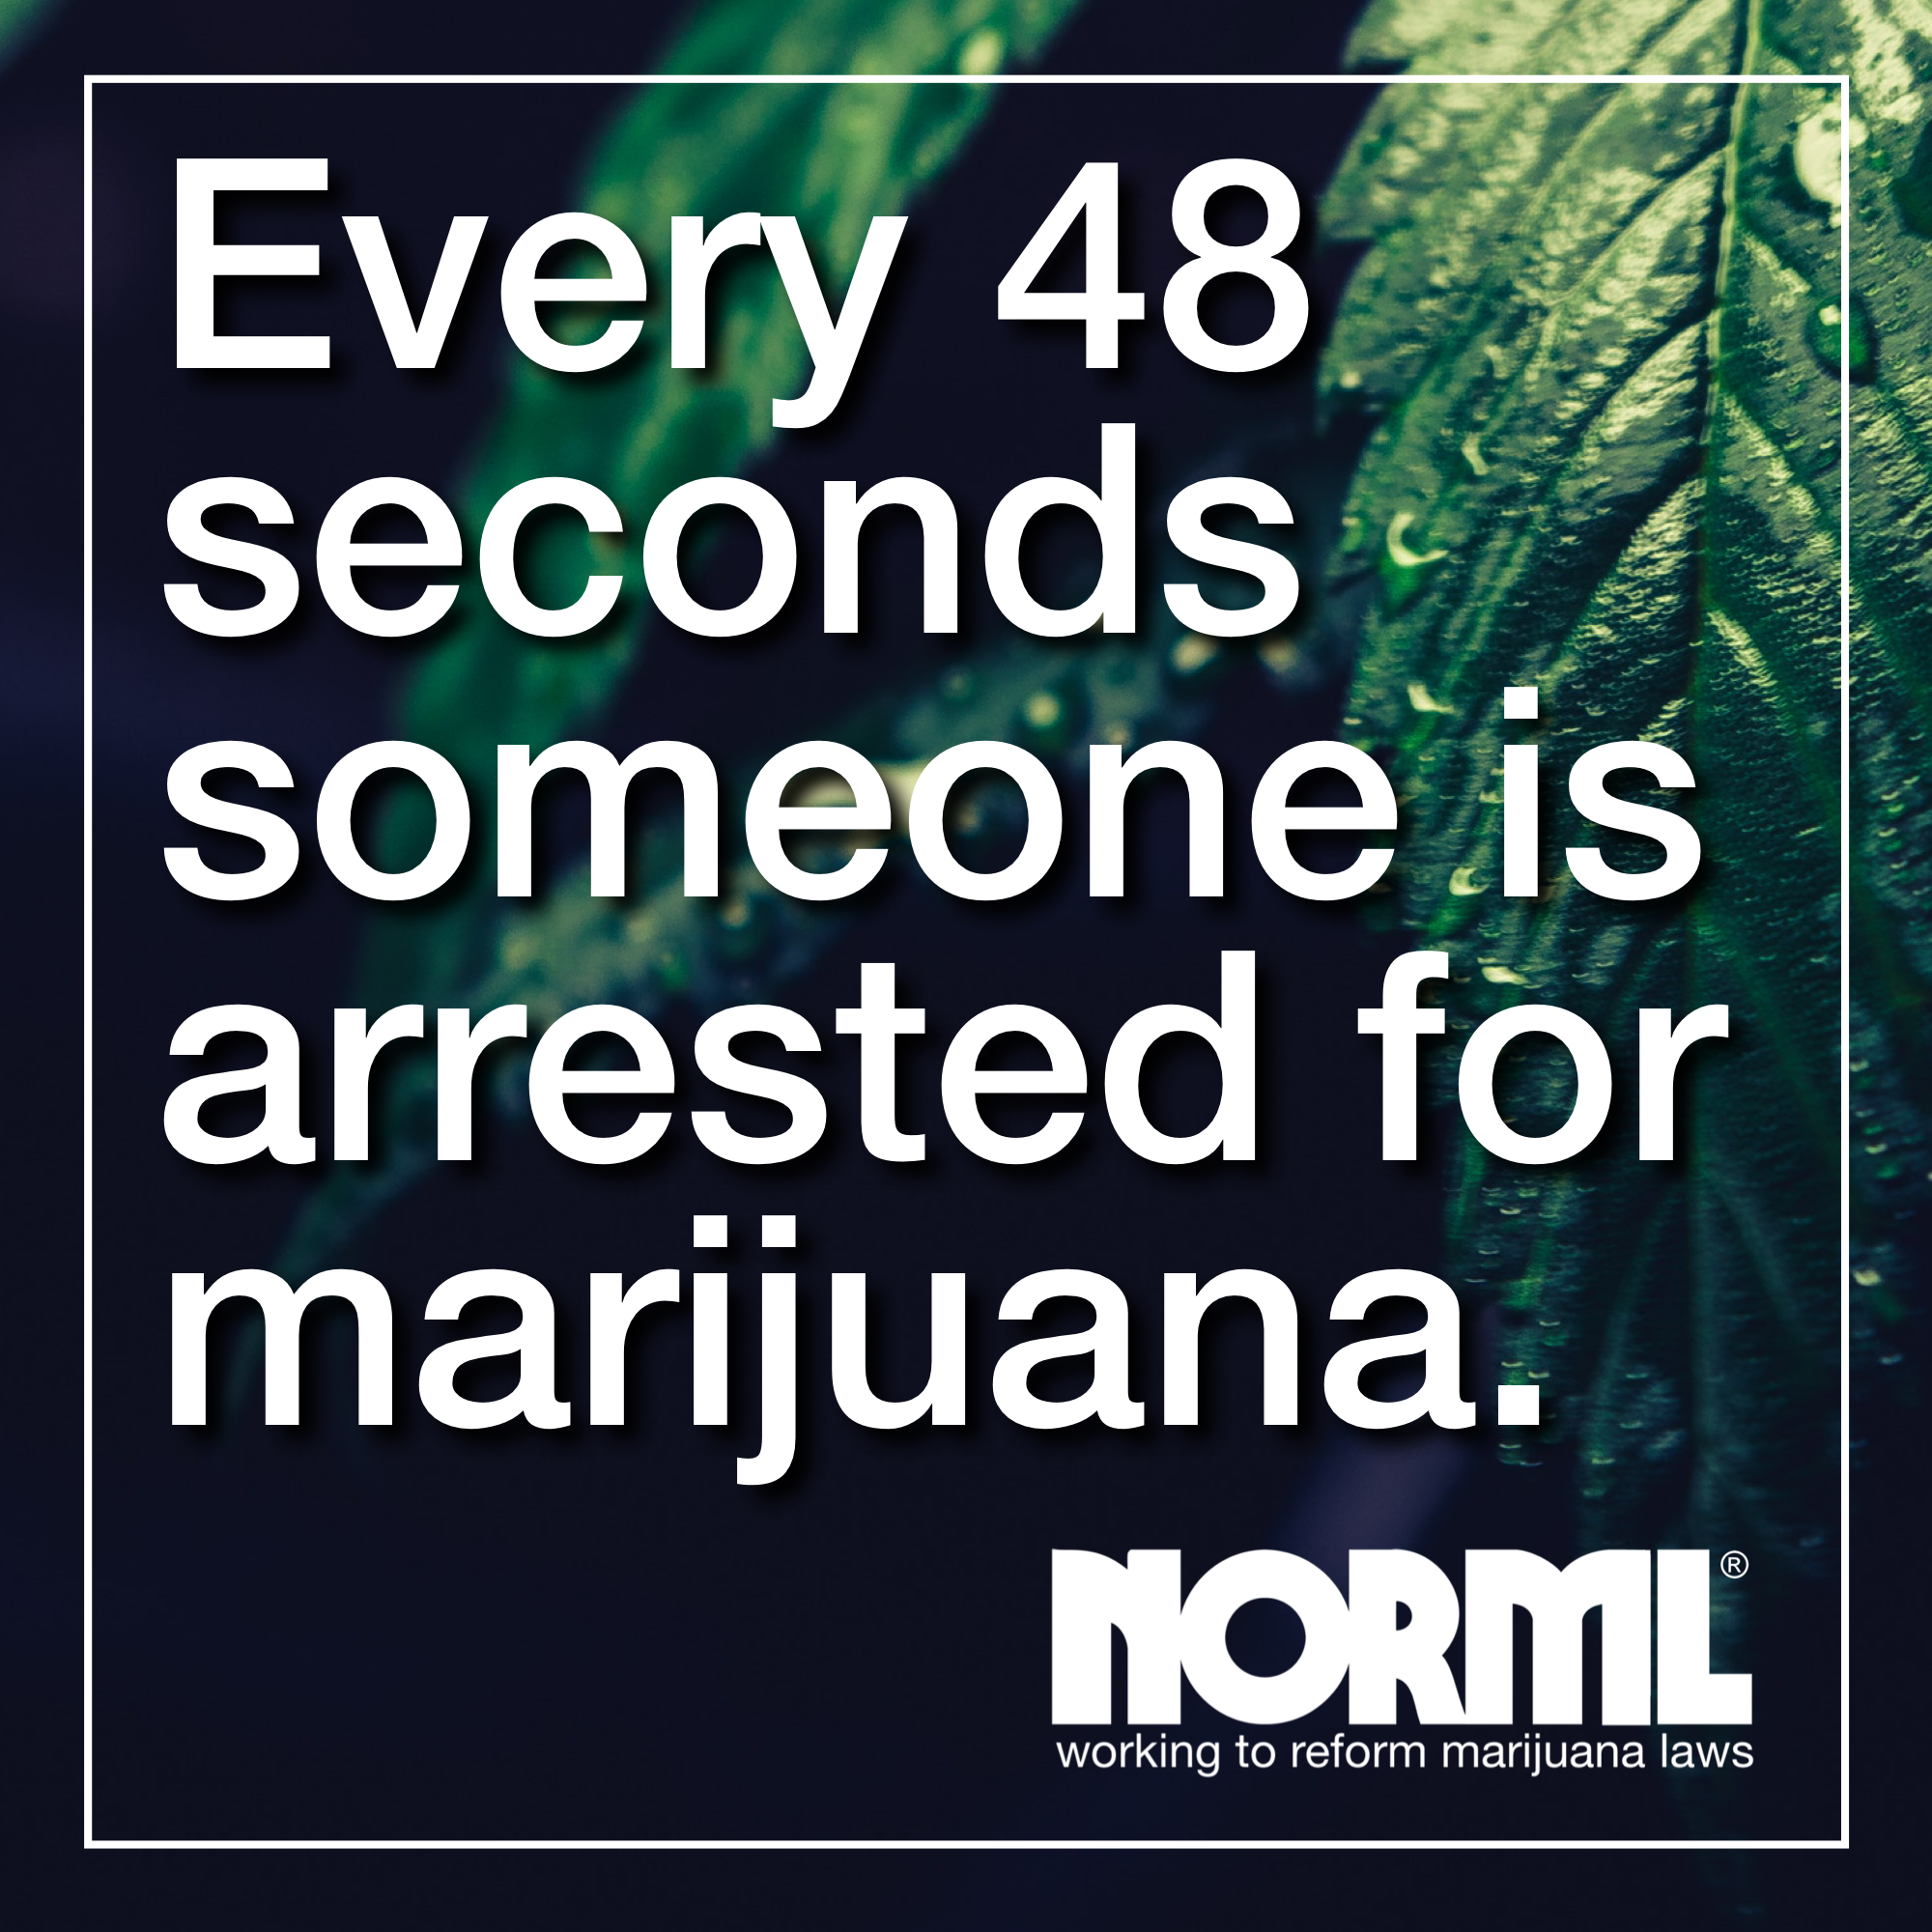 Every 48 seconds someone is arrested for marijuana in the US